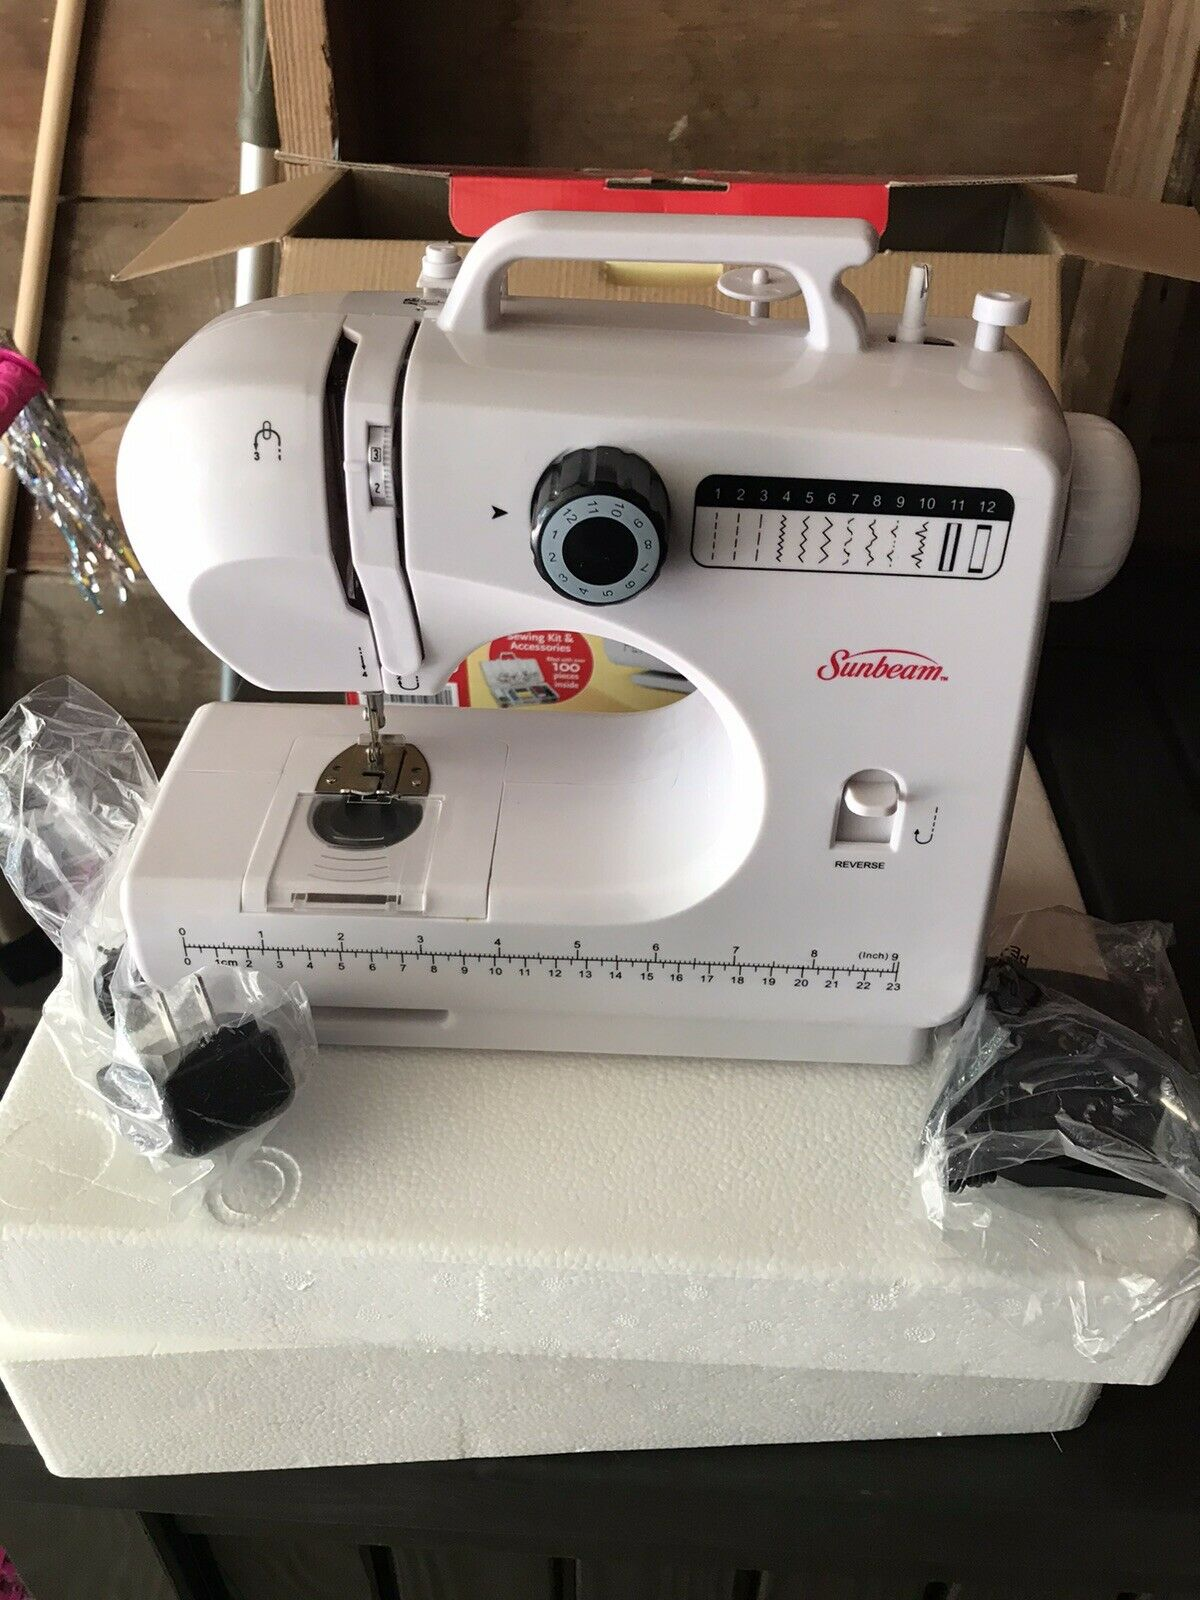 s l1600 - Sunbeam SB1818 Compact  Sewing Machine, Does Not Have The Bonus Sewing Kit